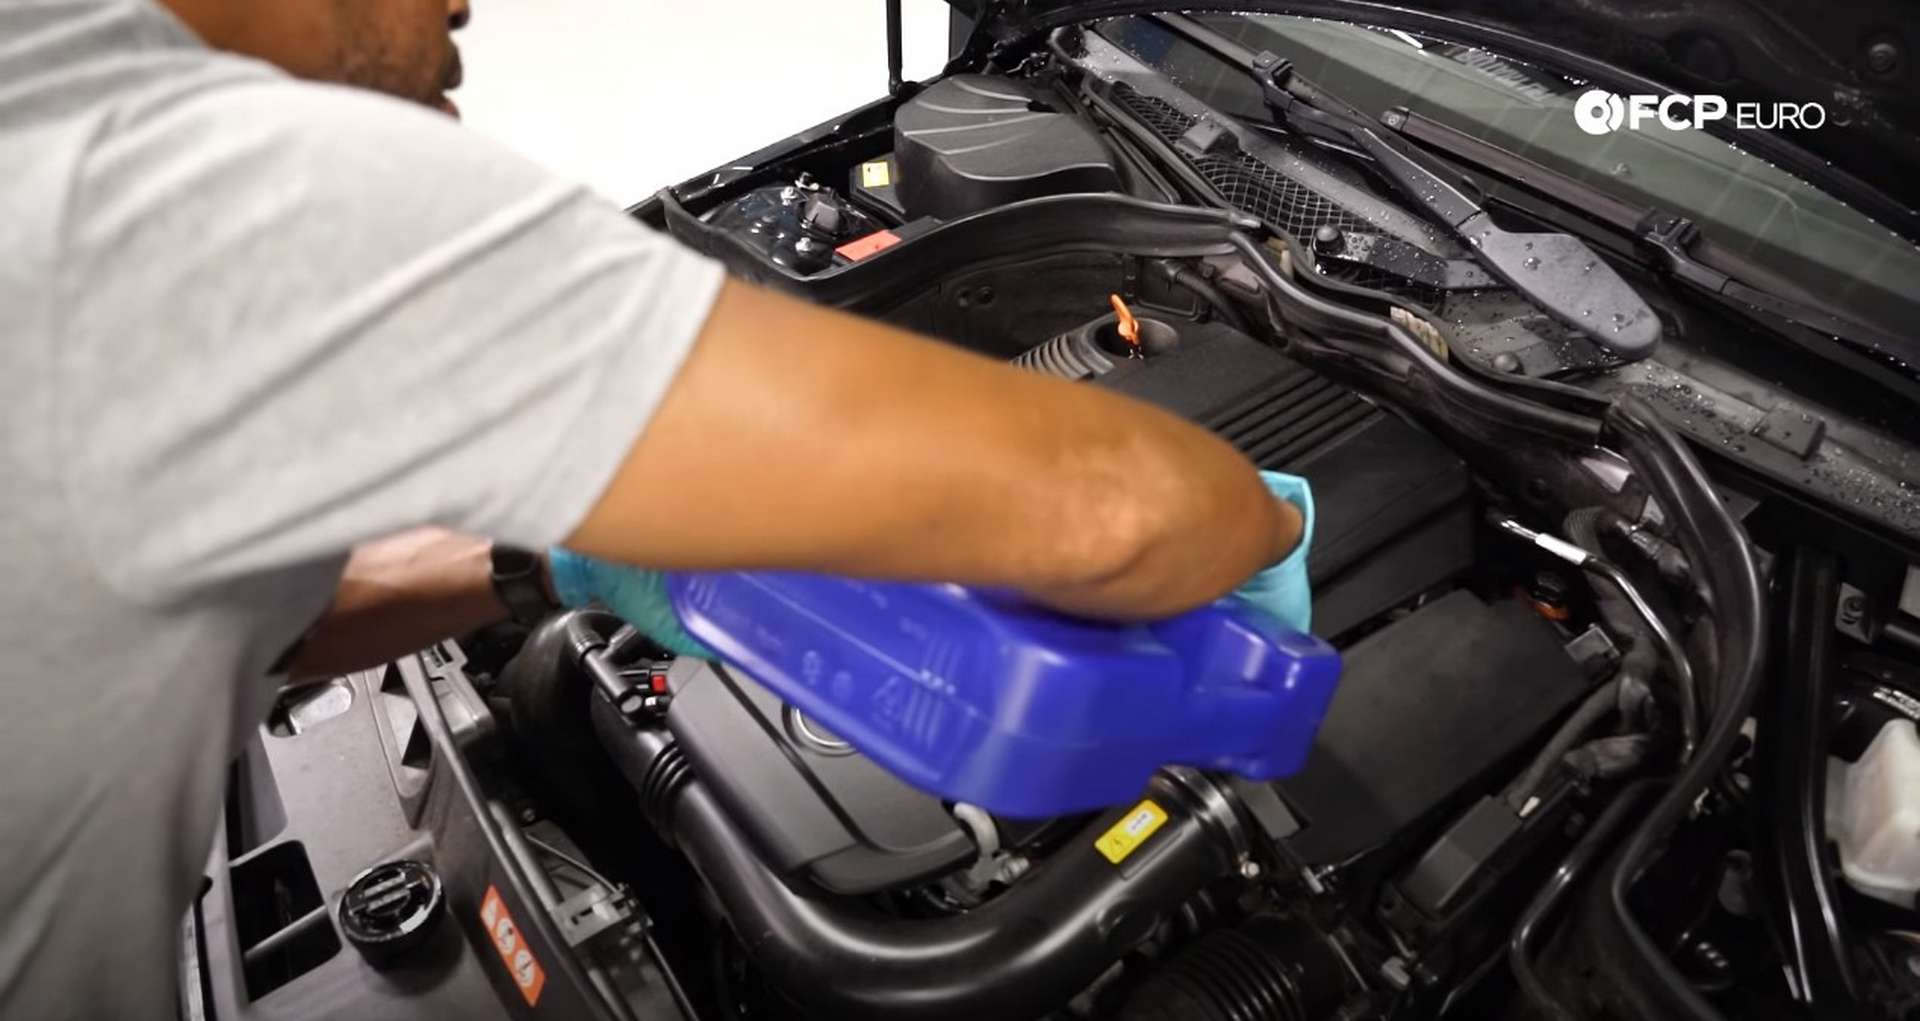 DIY Mercedes M271 Oil Change filling the engine with 5.5 liters of oil